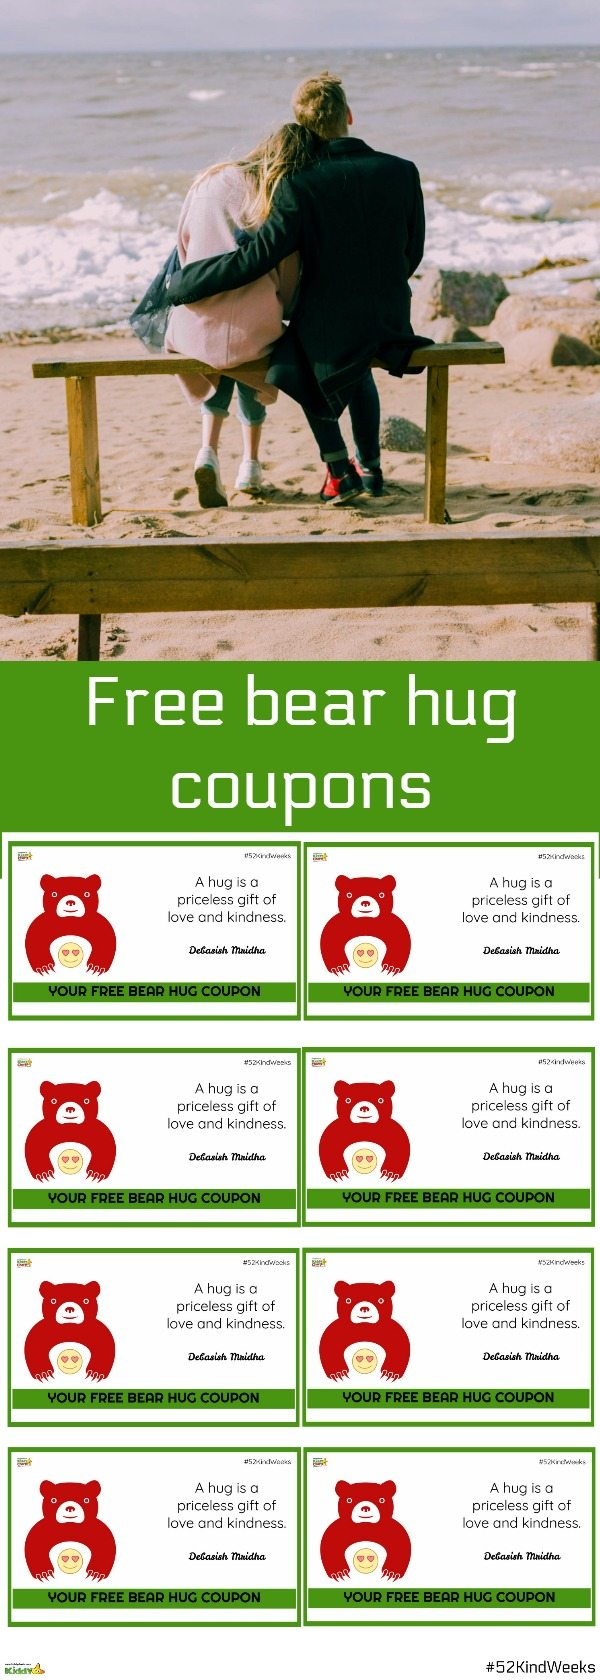 We hope you love our free bear hug coupons as much as we do!